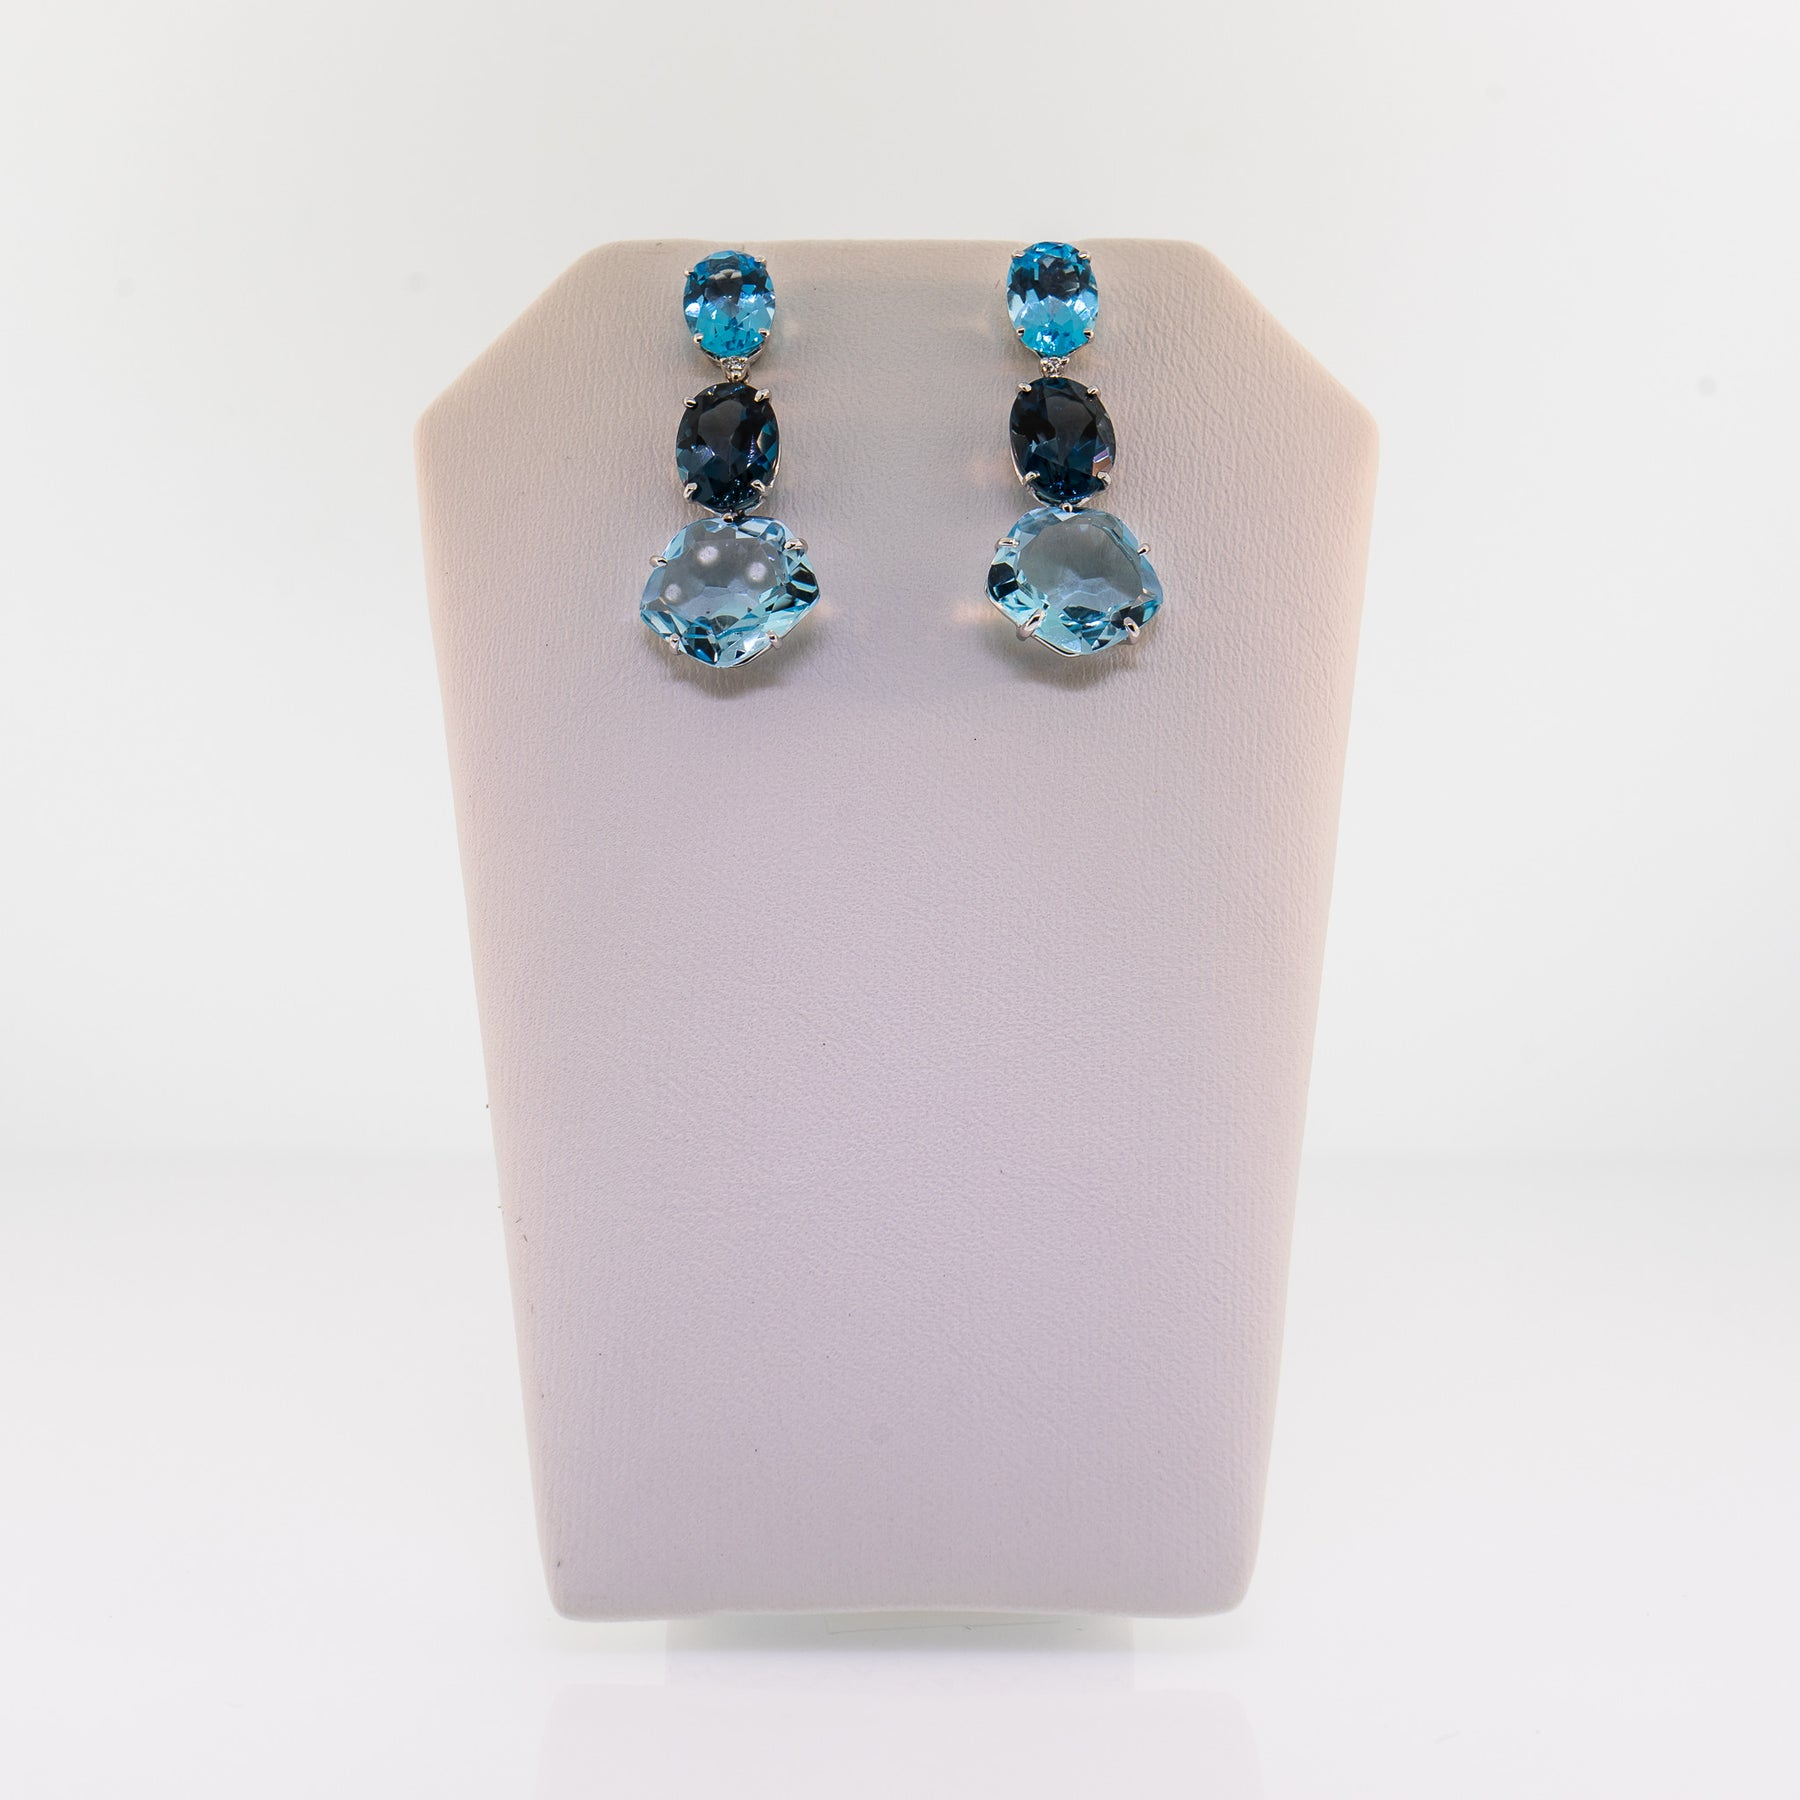 c13b3cd09a367 White Gold London Blue Topaz and Diamond Drop Earrings